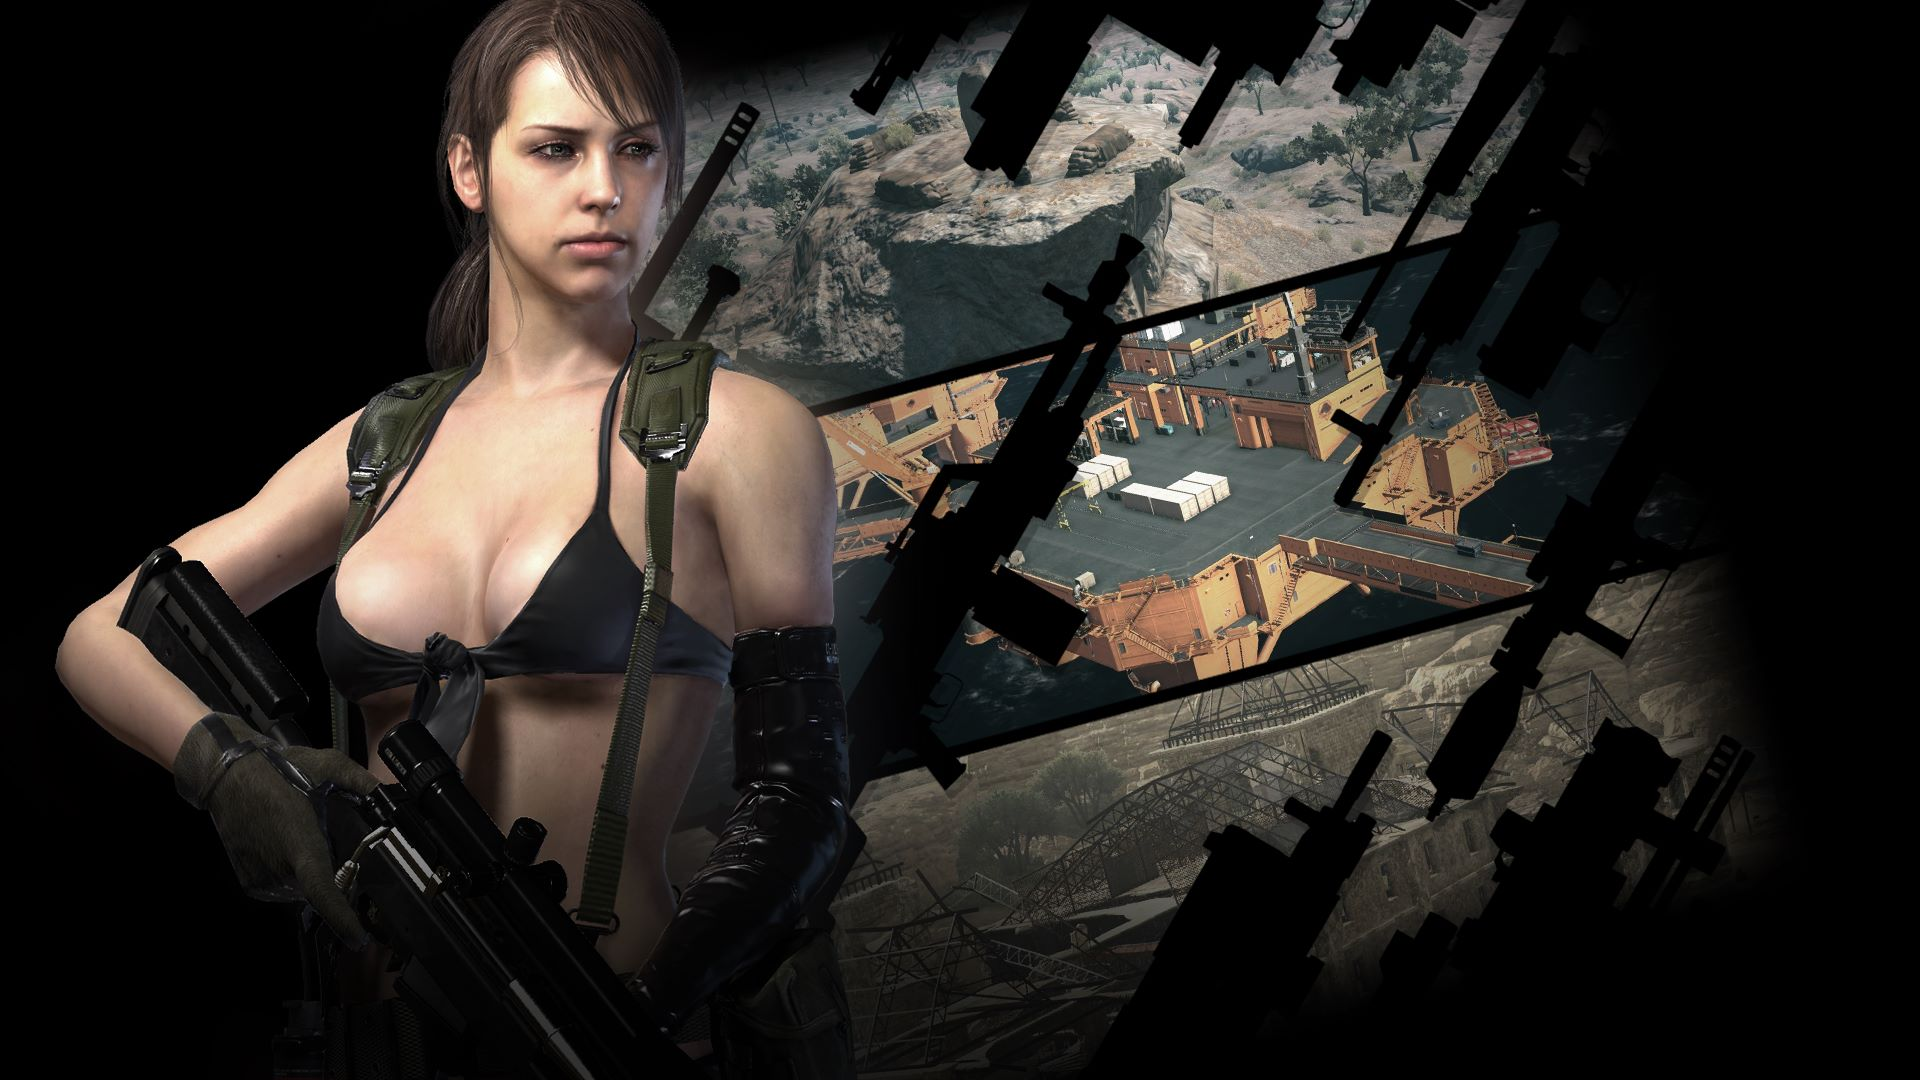 Comprar Metal Gear Online Expansion Pack Cloaked In Silence